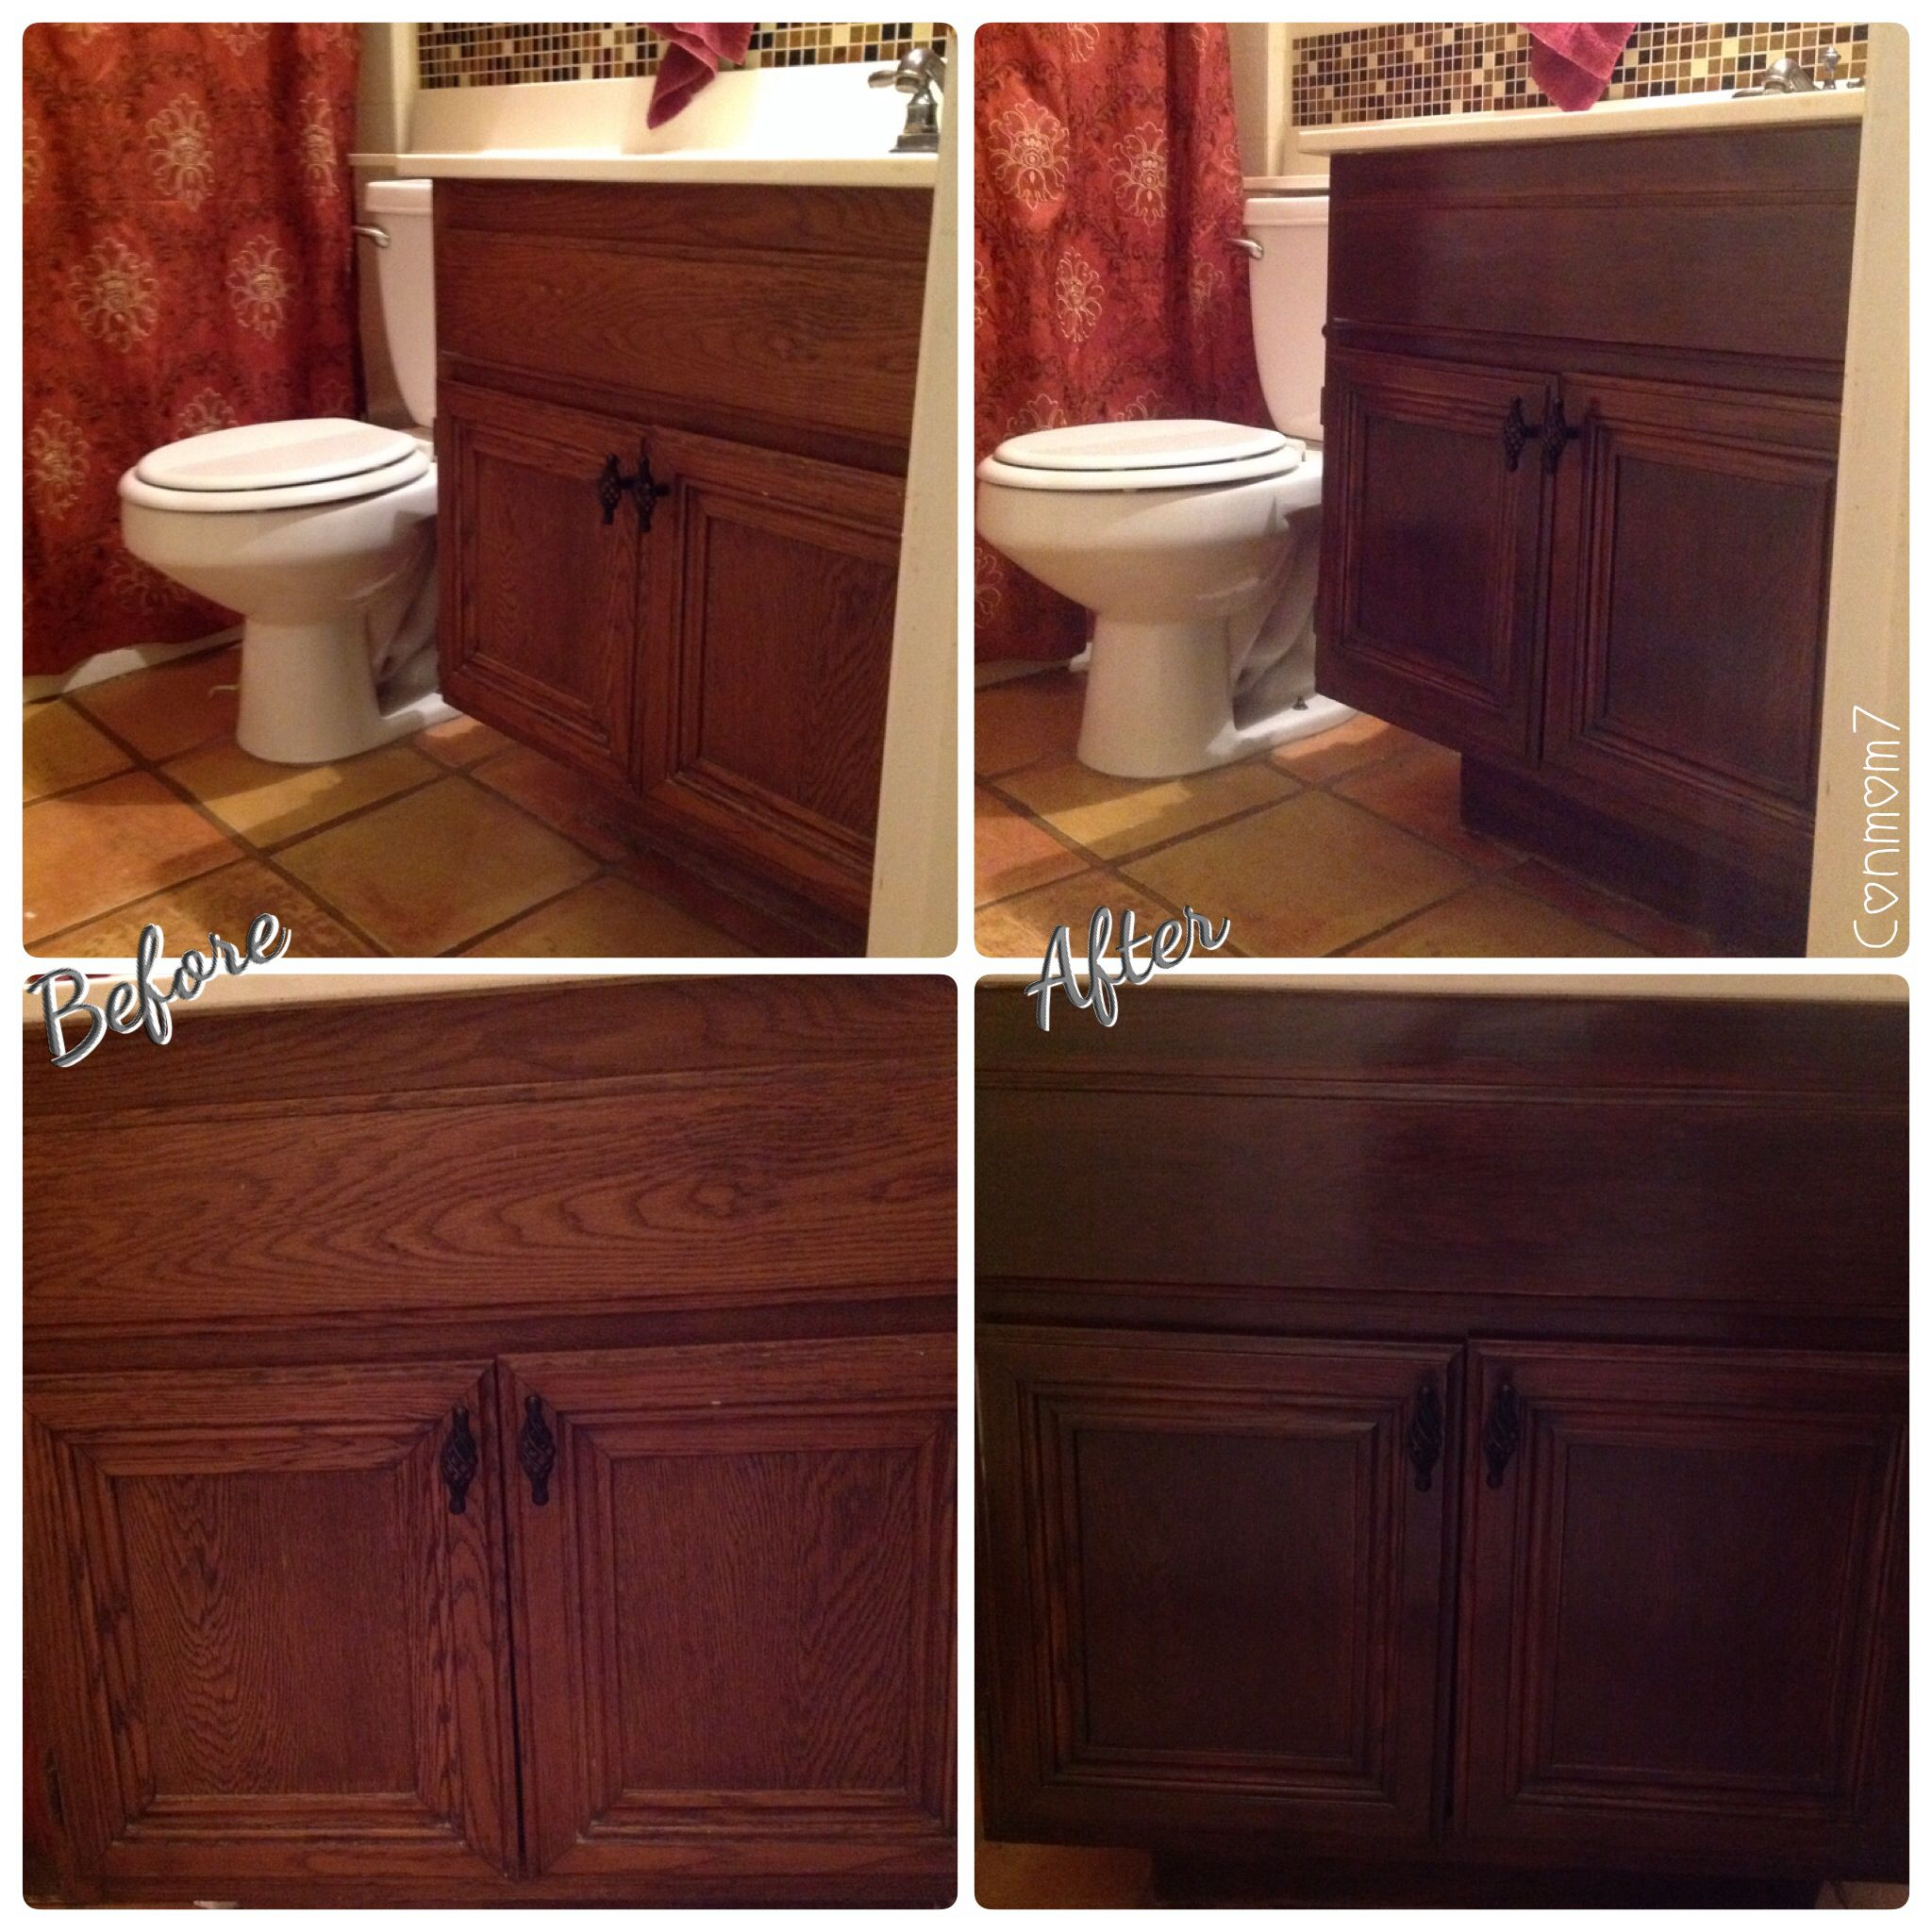 Superb img of Refinishing Bathroom Cabinets 1 Refinishing Pickled Oak Cabinets  with #692E20 color and 2048x2048 pixels